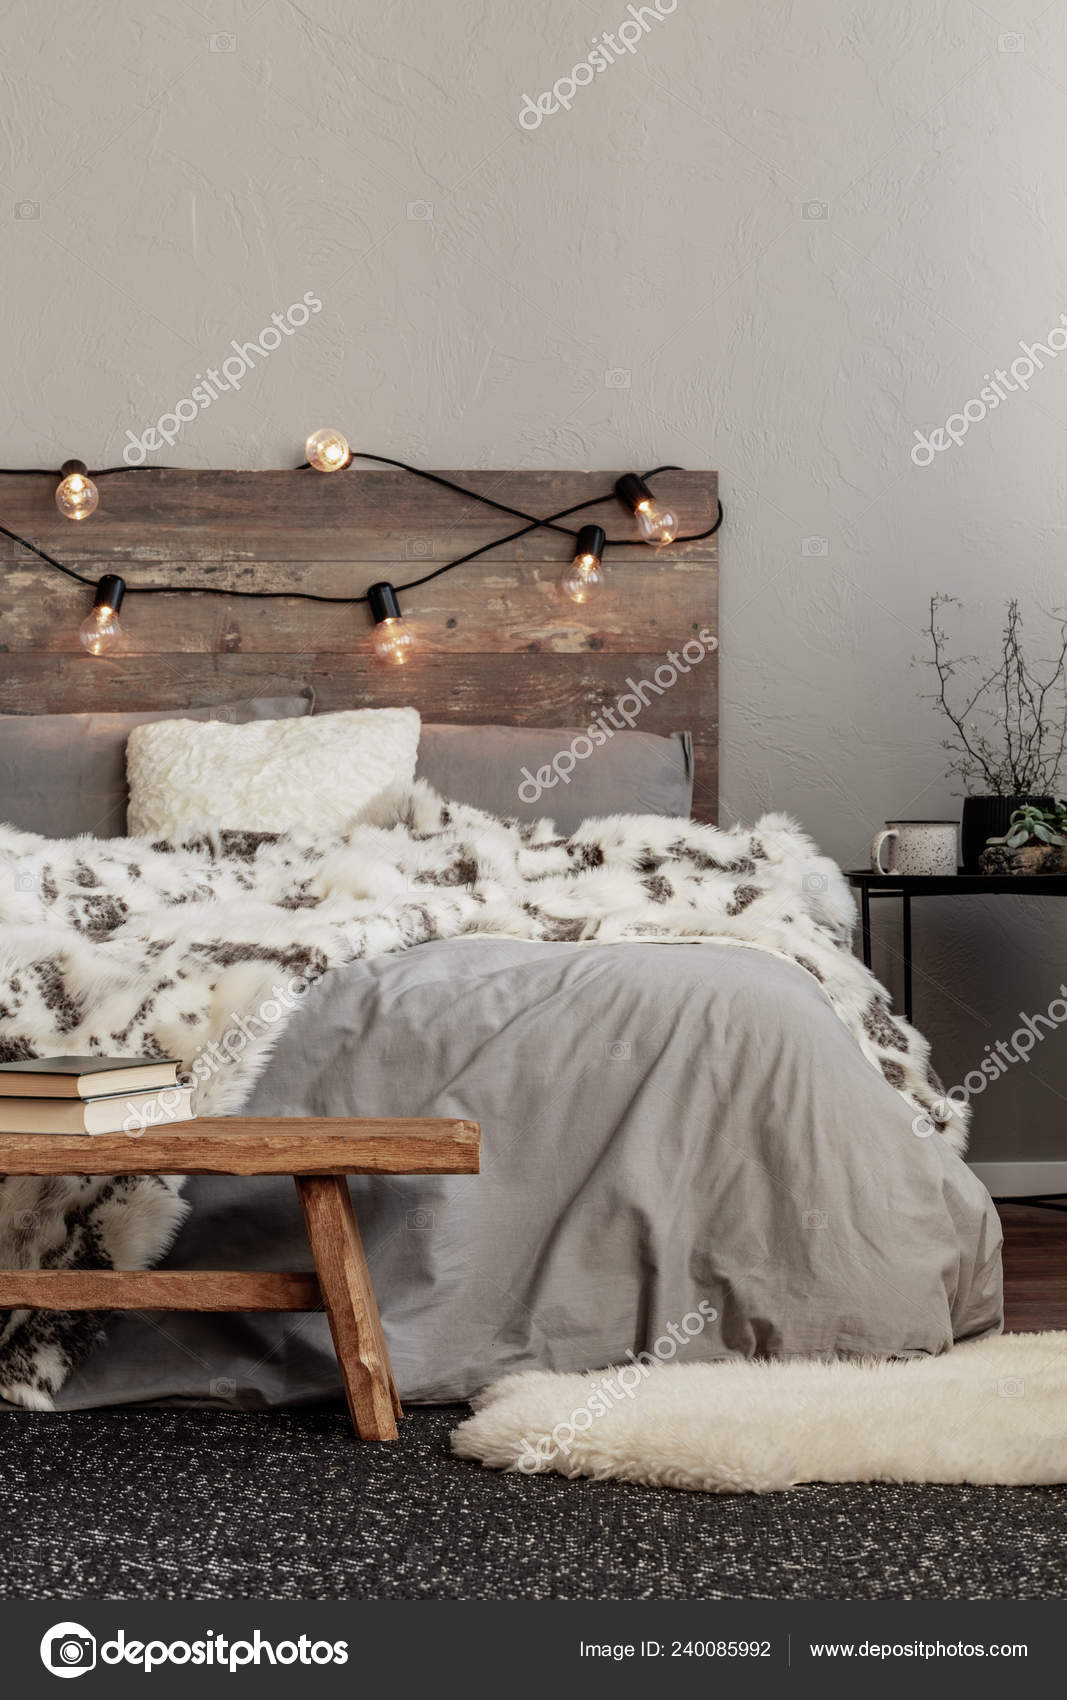 White Fury Blanket Grey Bedding King Size Bed Wooden Headboard Stock Photo Image By C Photographee Eu 240085992